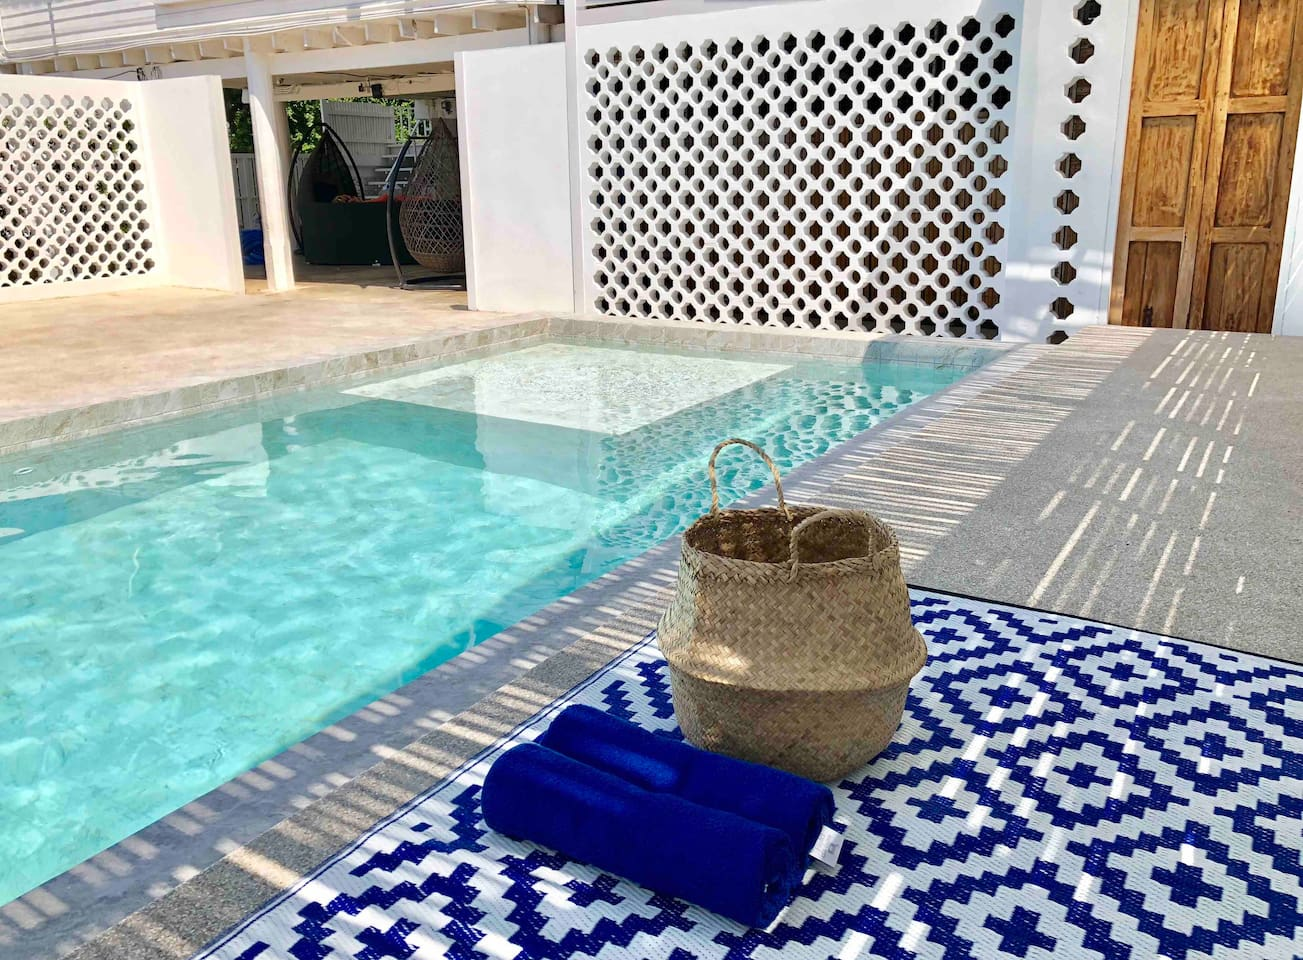 Our earth stone sea salted swimming pool is on the White Wood House and White hut for the guests of both 2 places to relax in a sunny lovely day.